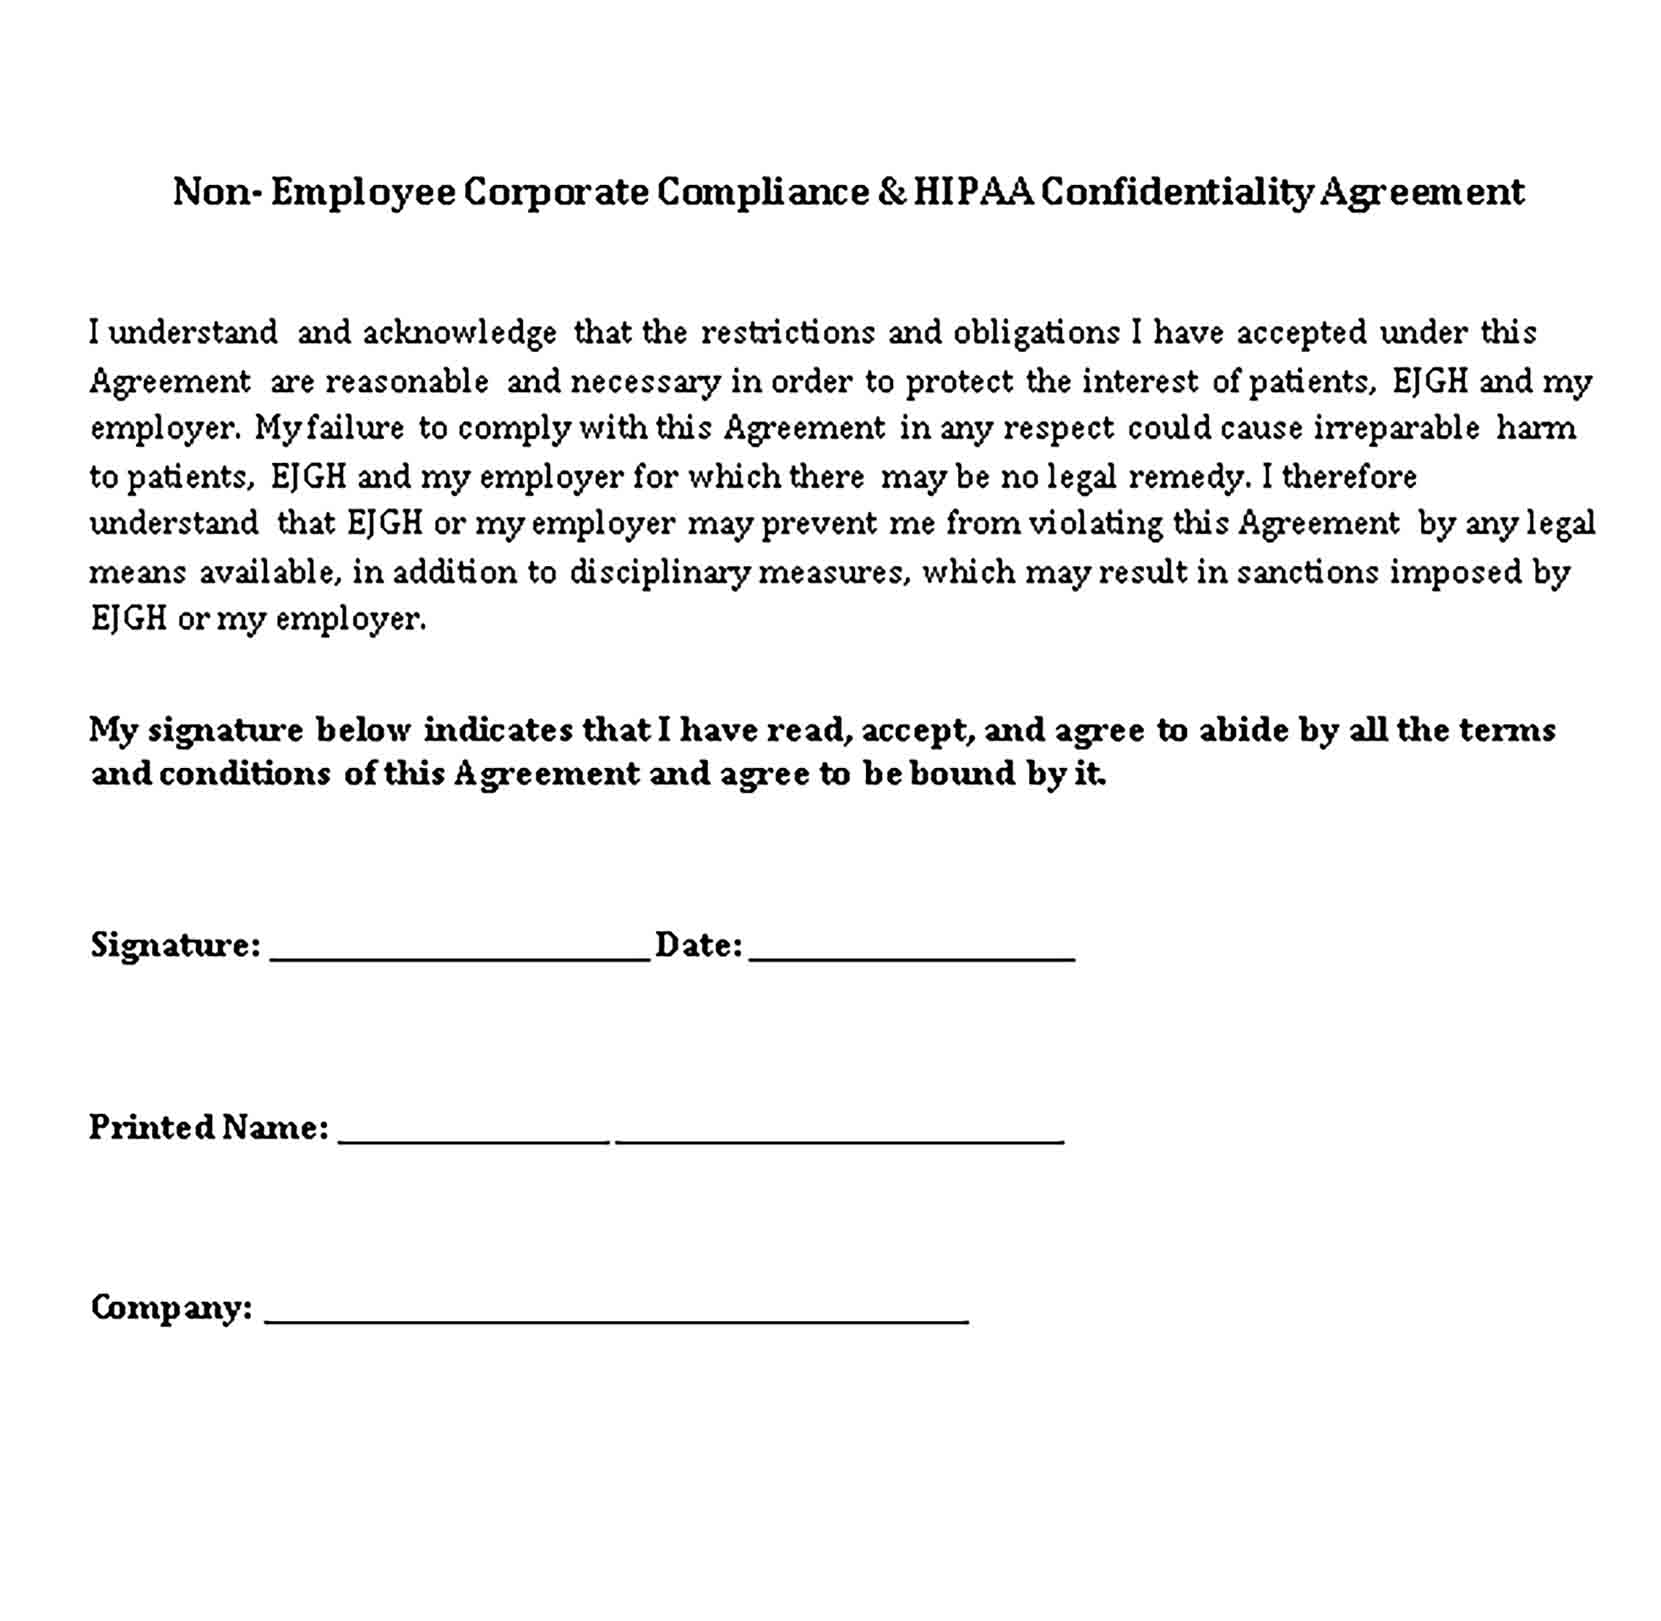 Templates non employee compliance and HIPAA Confidentiality Agreement Sample